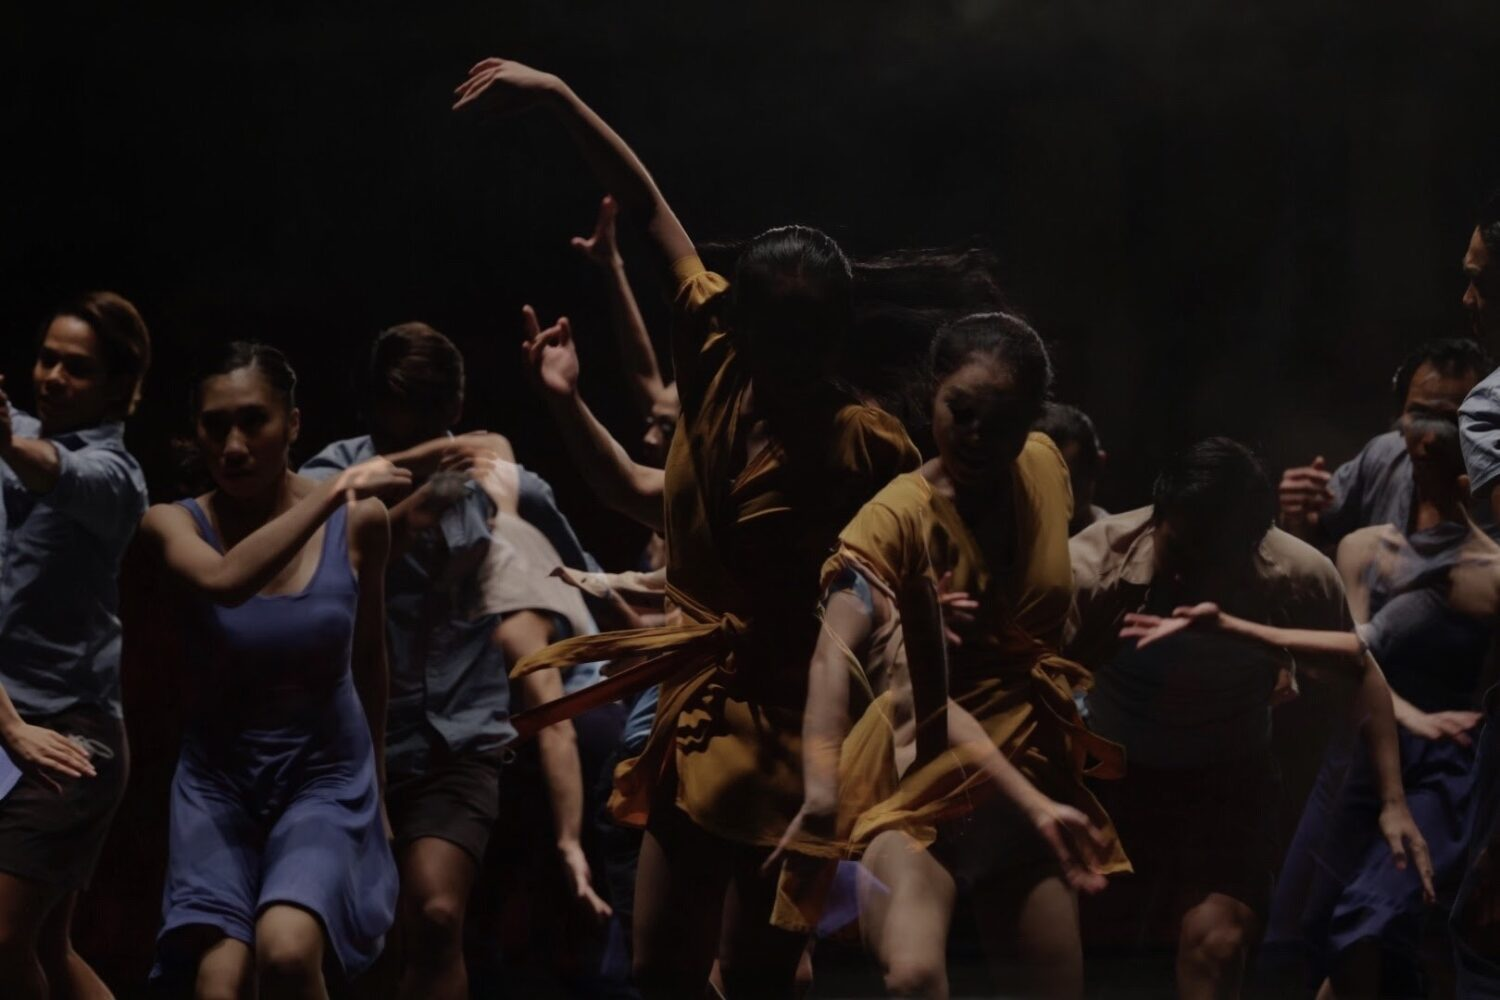 A still from Kabaligtaran ng Gunaw, a dance  film choreographed by Ronelson Yadao, directed  by Jerrold Tarog, in the  Philippines. Photo: Pong Ignacio.